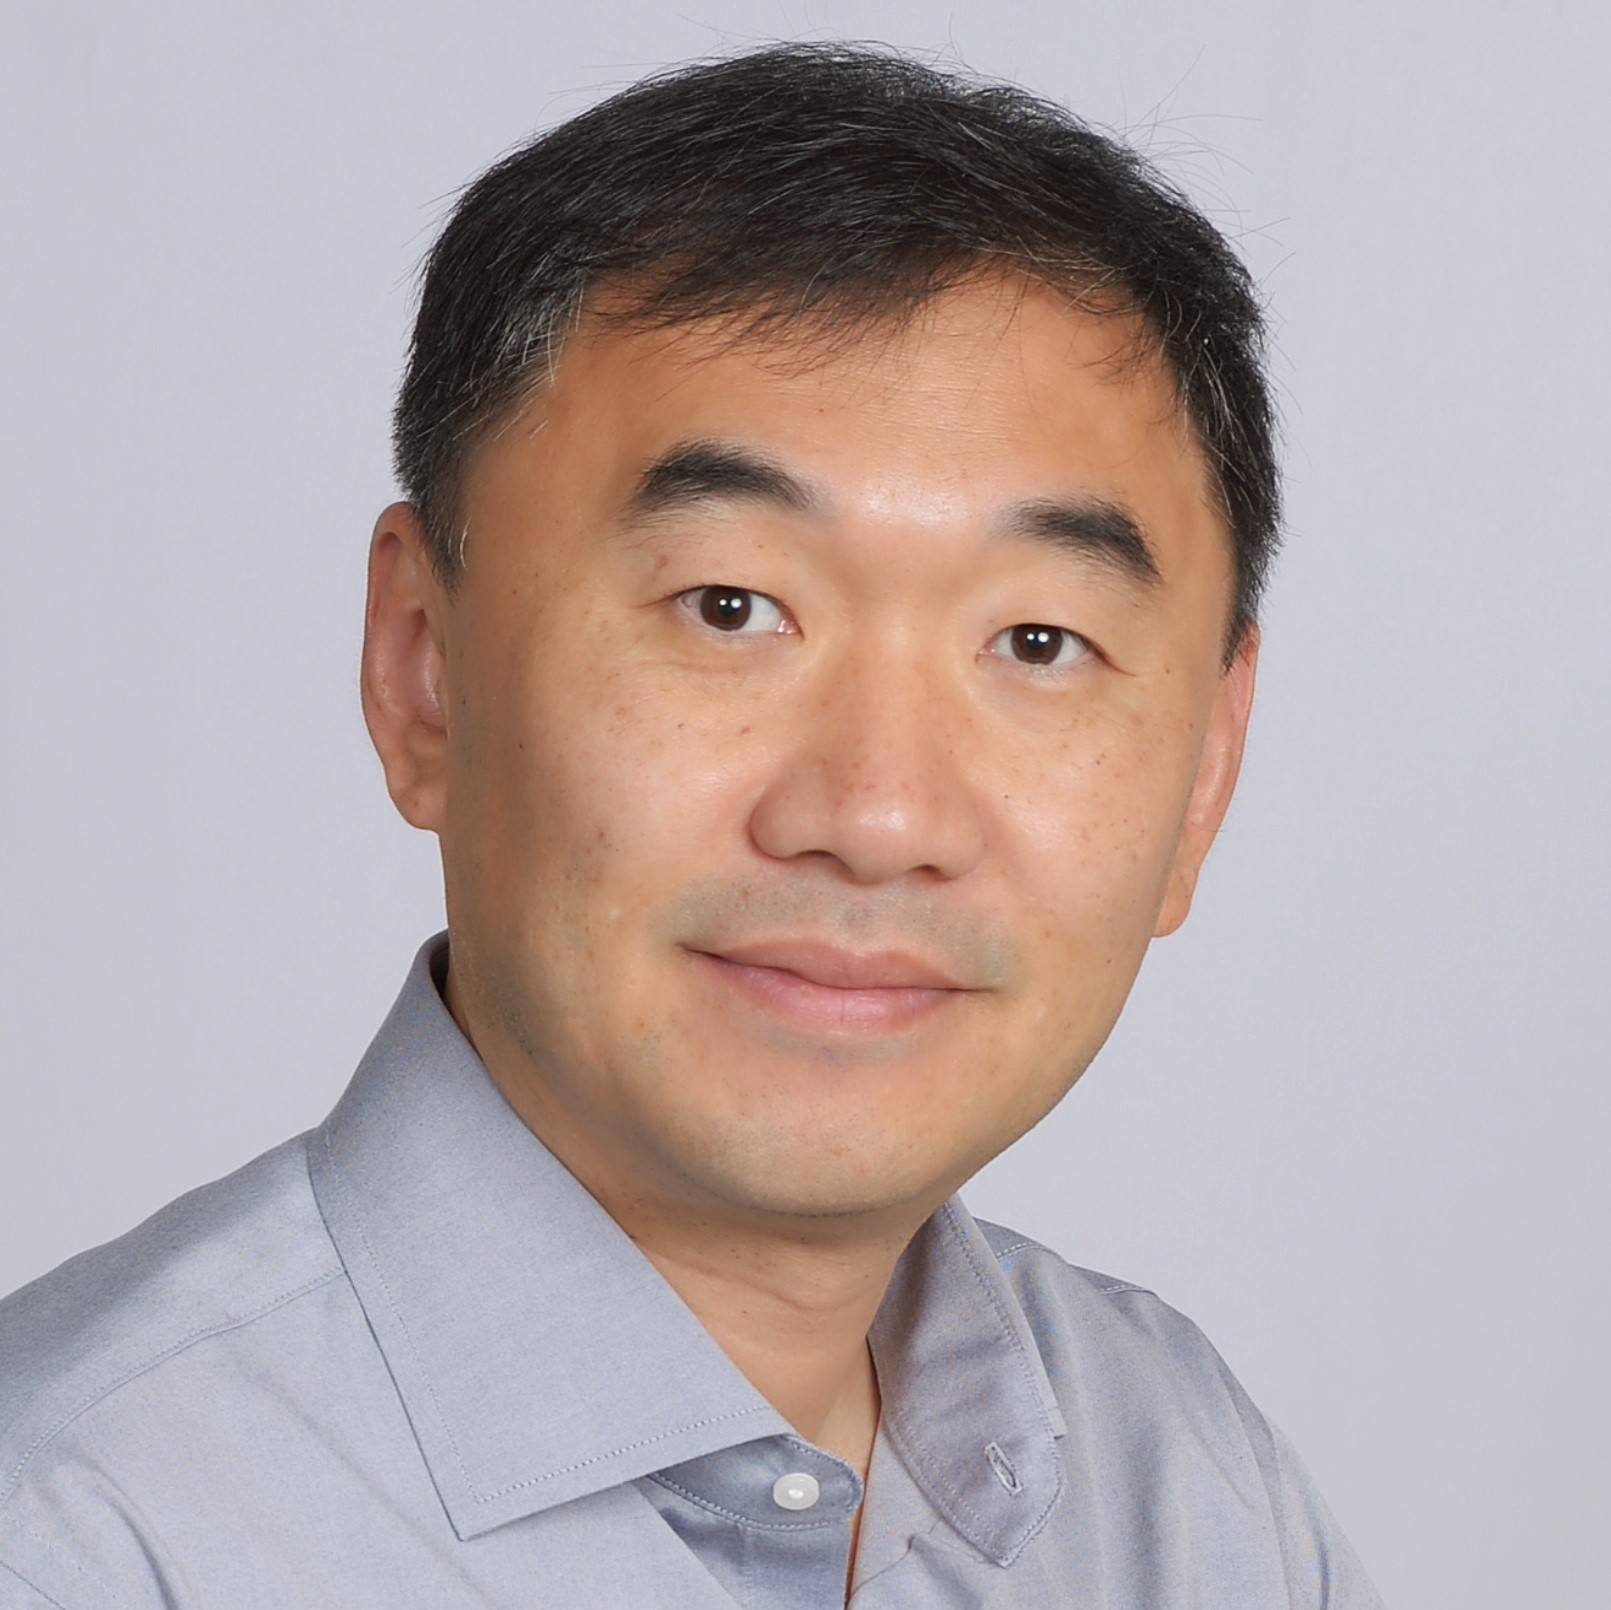 Portrait of Jie Liu